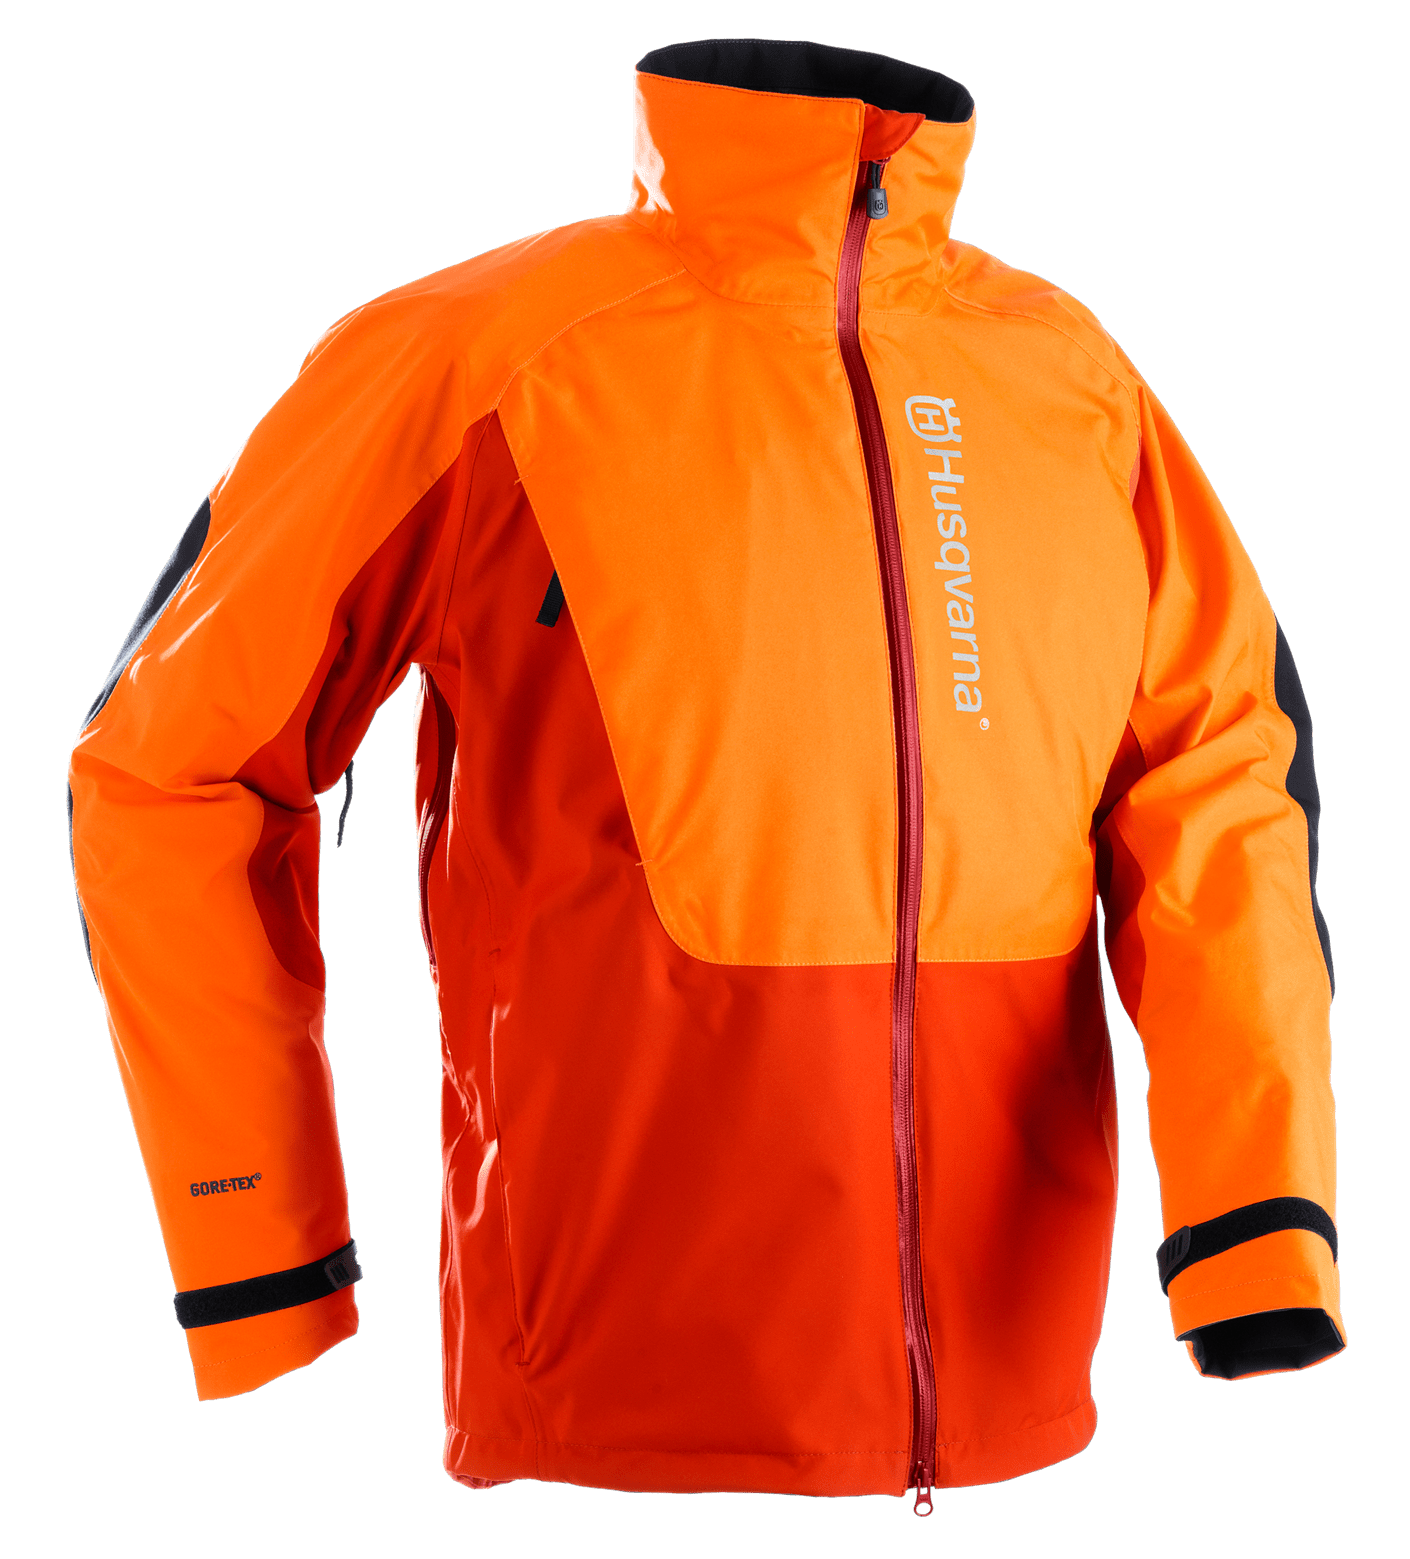 All weather jacket, technical with Gore-Tex